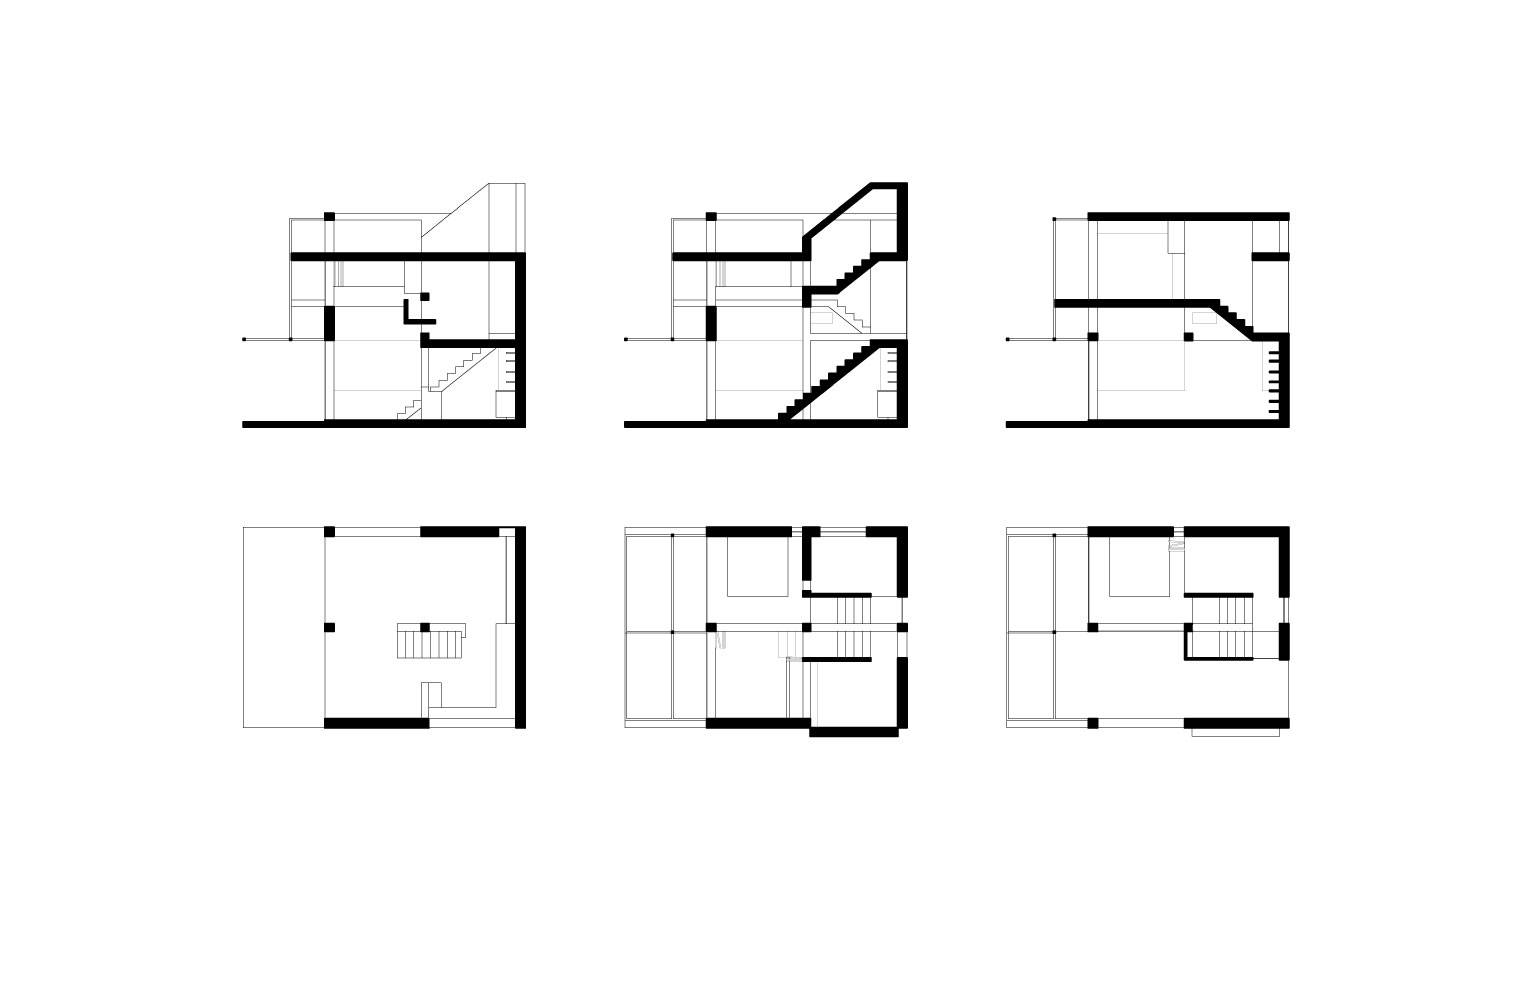 House Rese - 6x6x6 House Plans & Sections